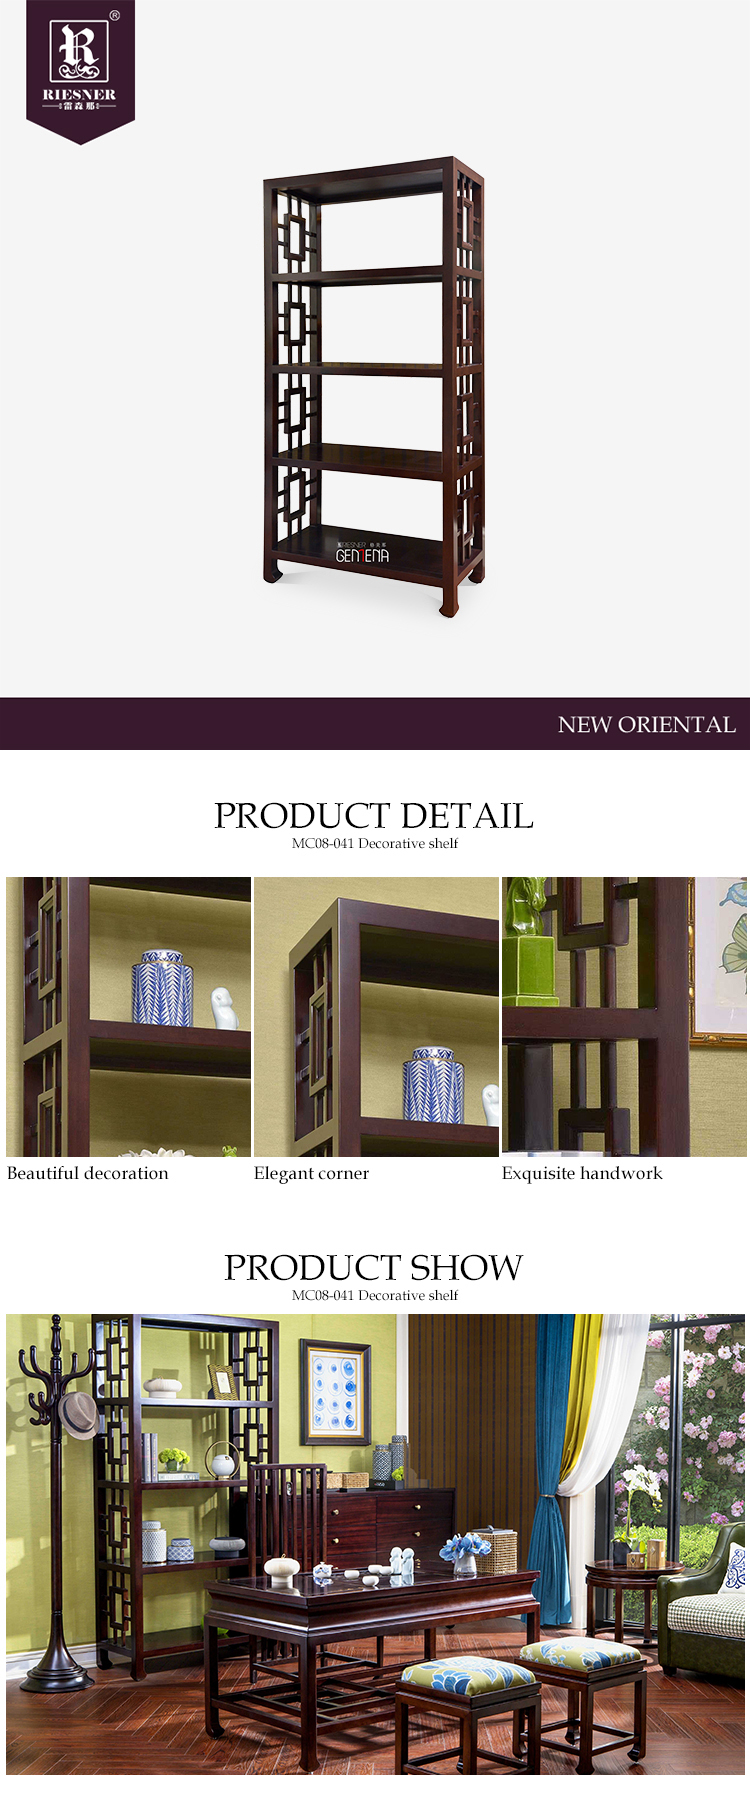 MC08-041 Decorative shelf tea Room Series set Leisure Area furniture New Oriental furniture